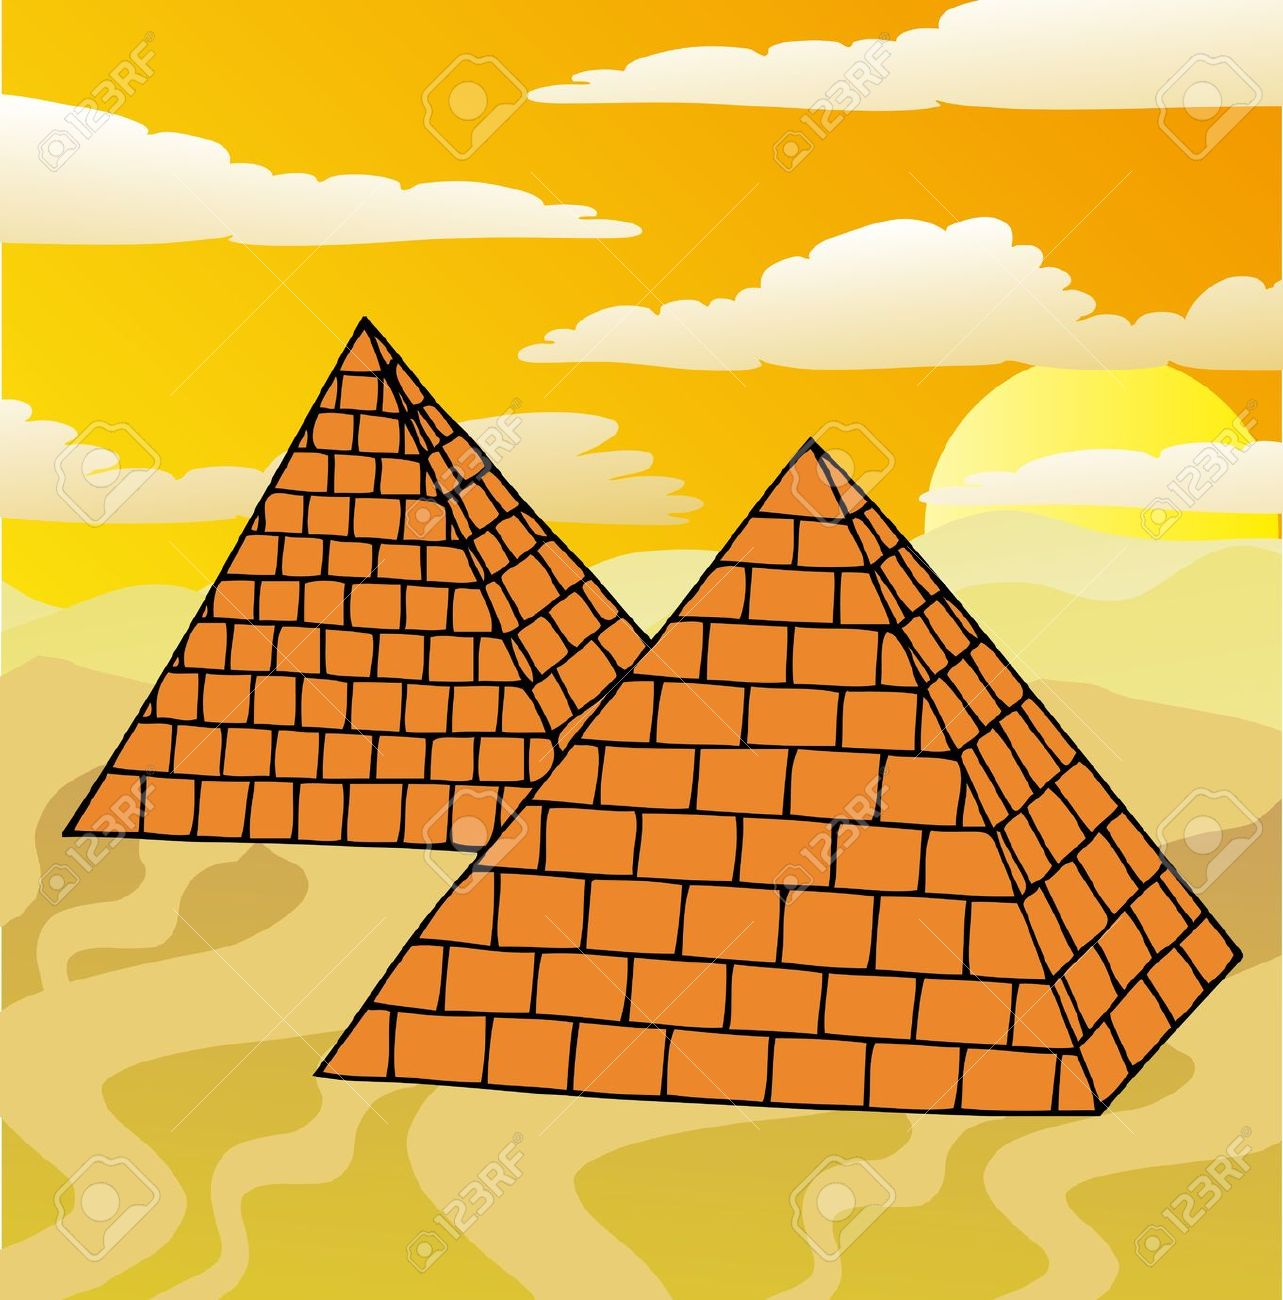 Drawn pyramid cartoon Egyptian Clip Pyramid Art Clip